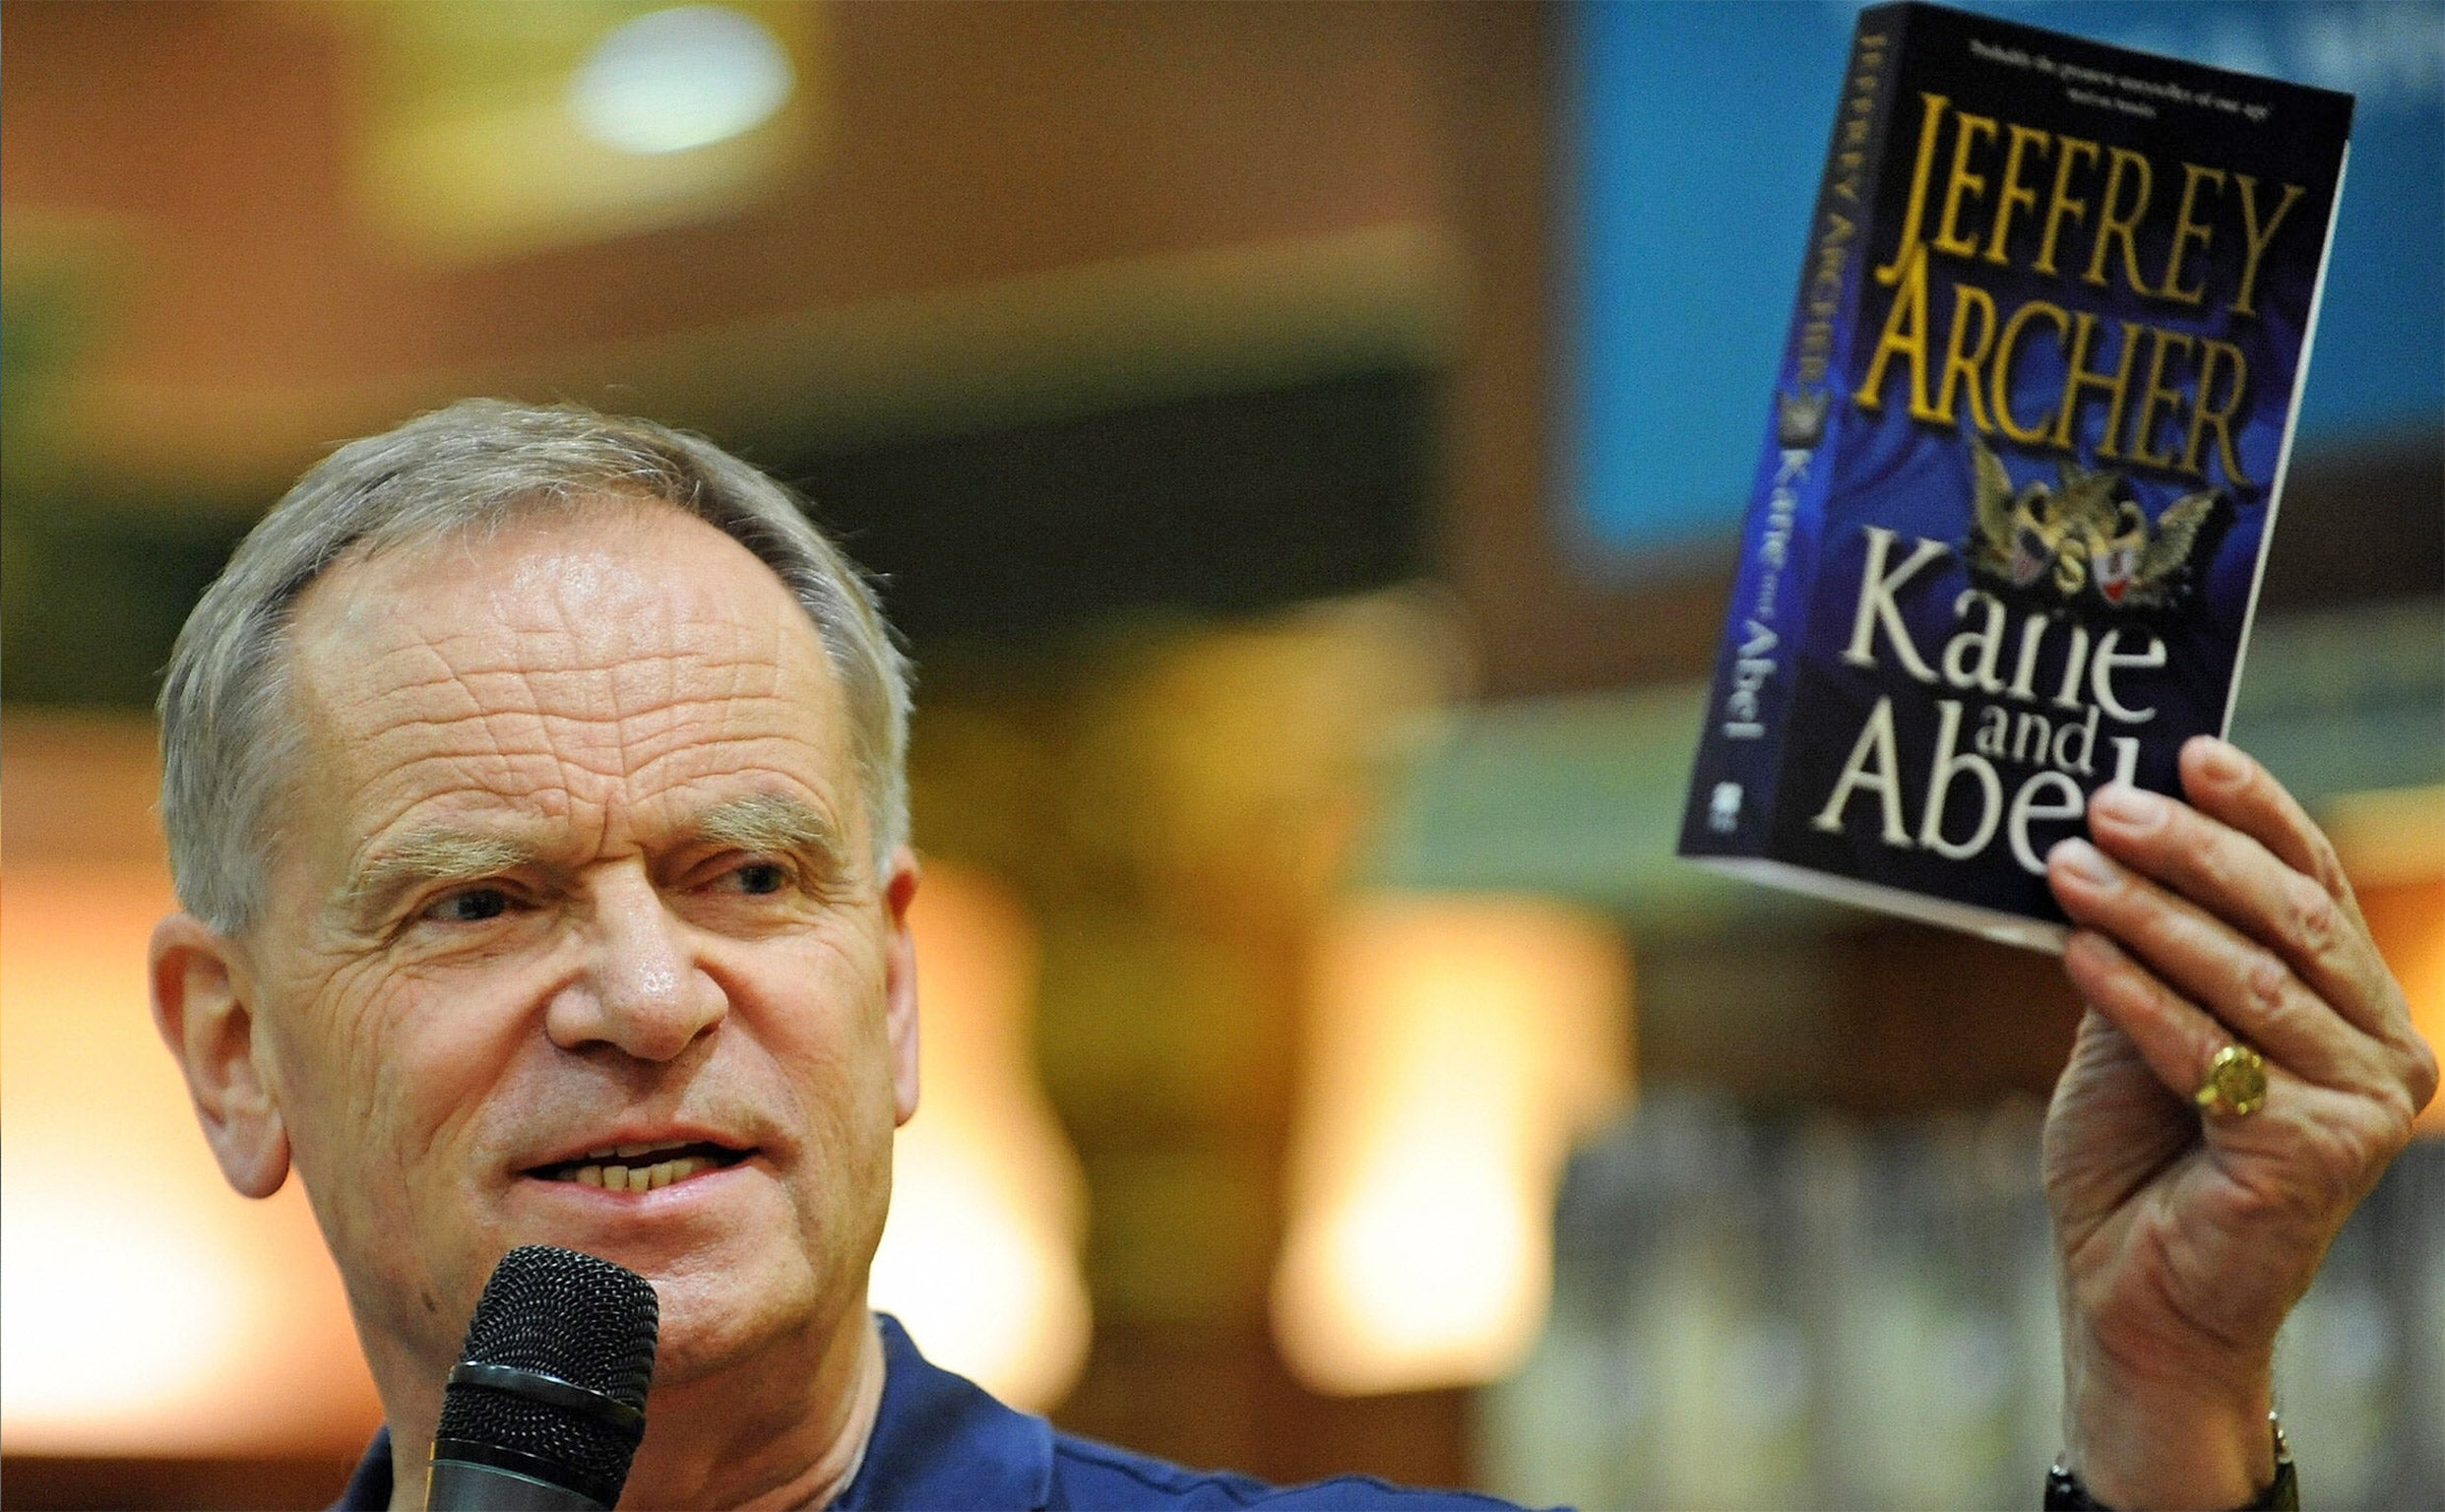 Jeffrey Archer accuses...